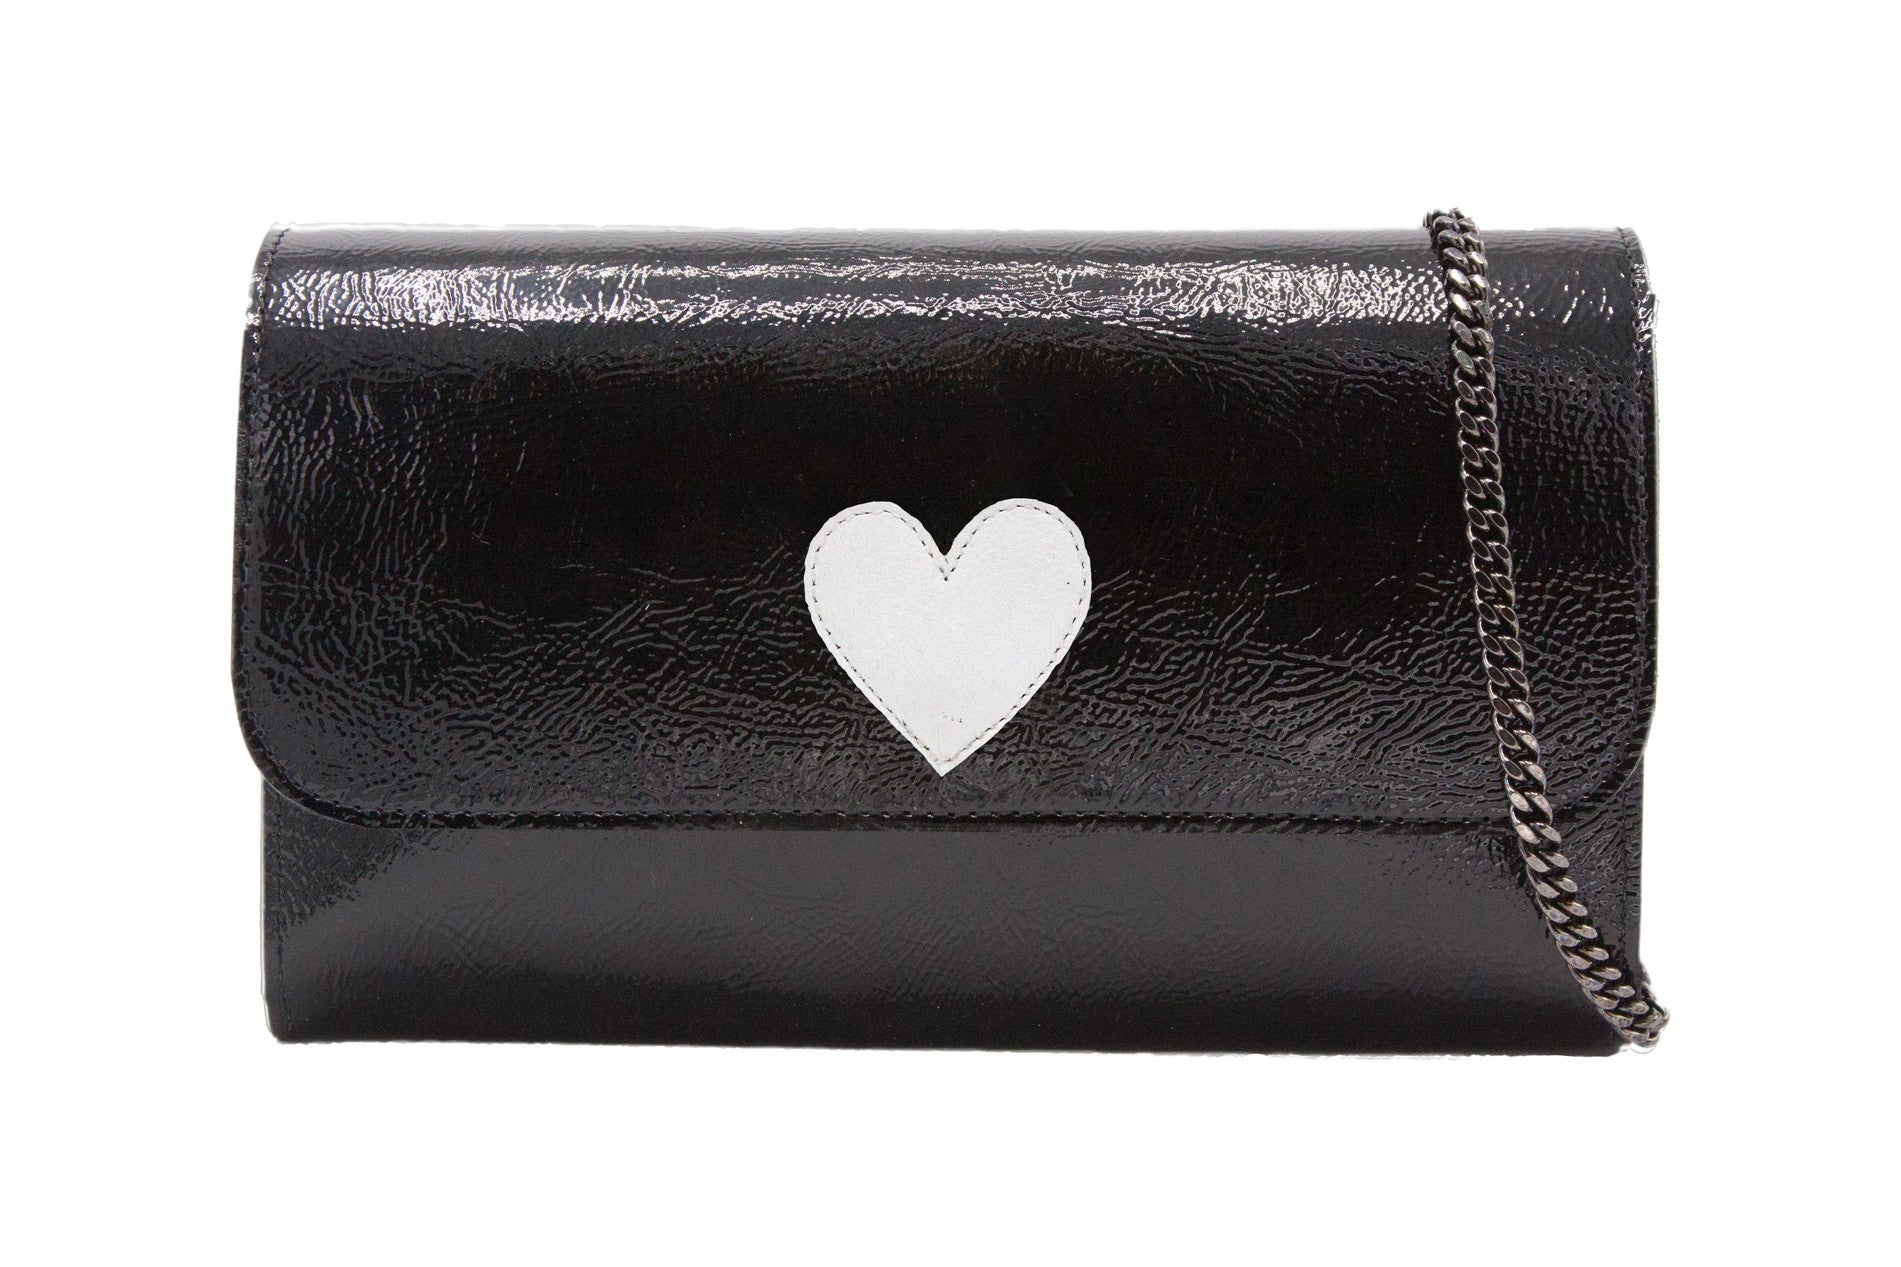 Mich Shoulder Bag Cracked Black Patent Leather w/ White Heart